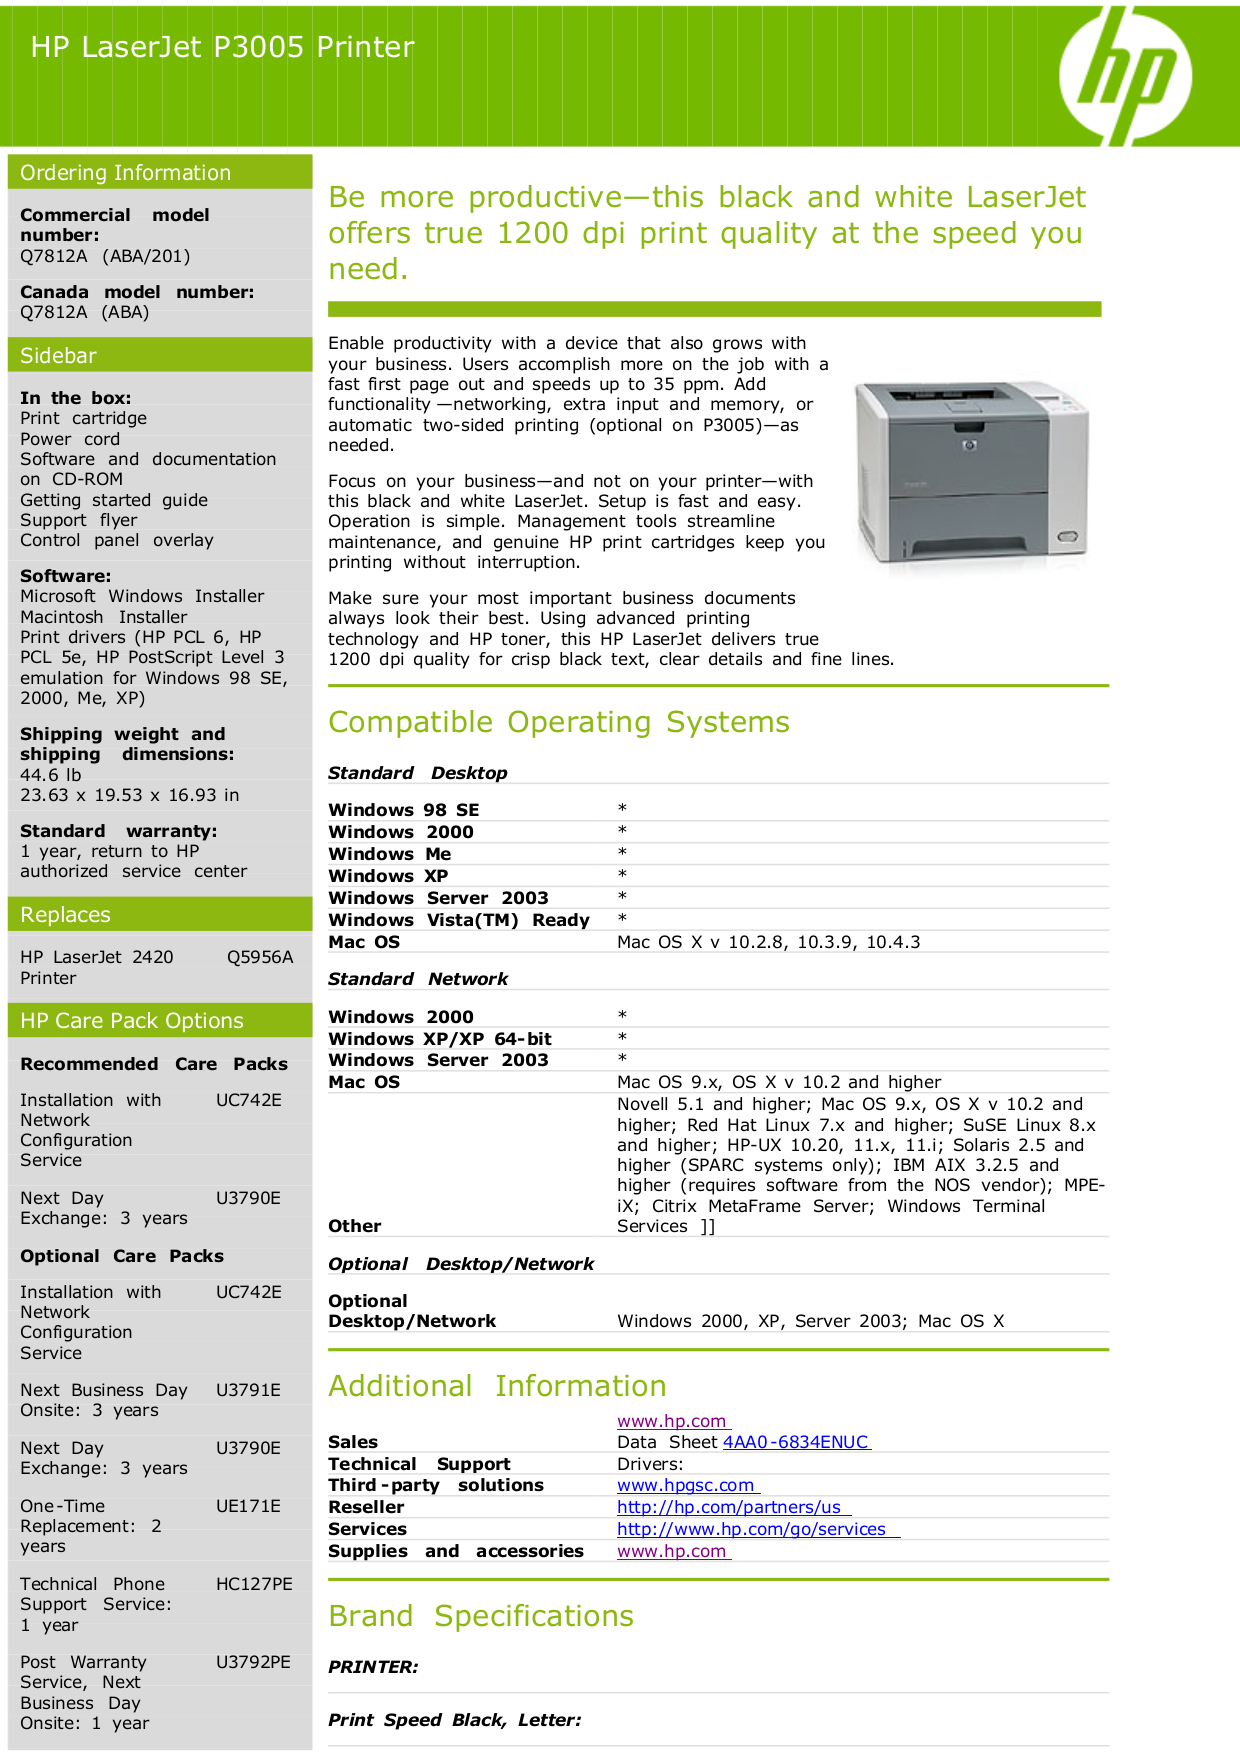 Download free pdf for HP Laserjet,Color Laserjet P3005 Printer manual